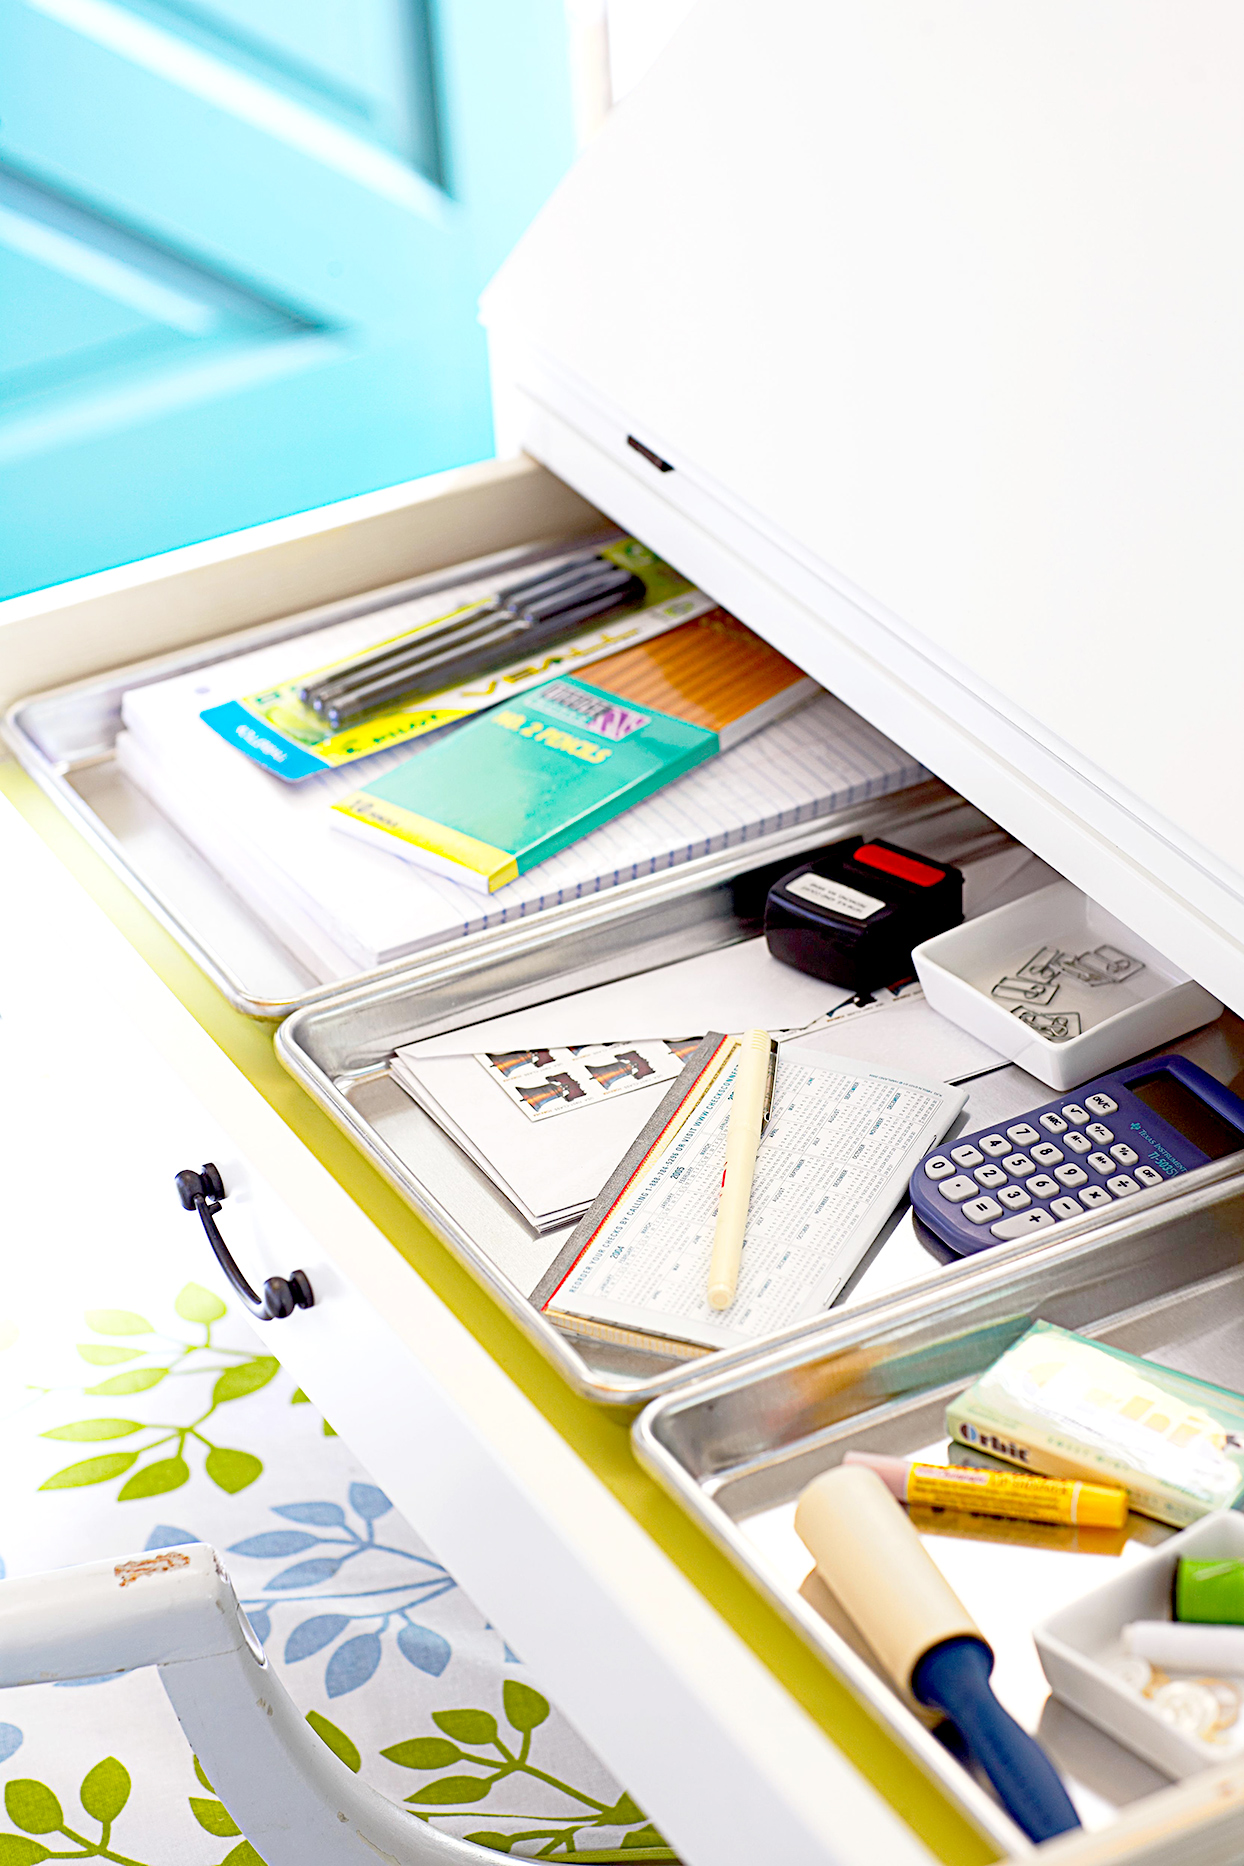 Drawer with metal trays filled with items